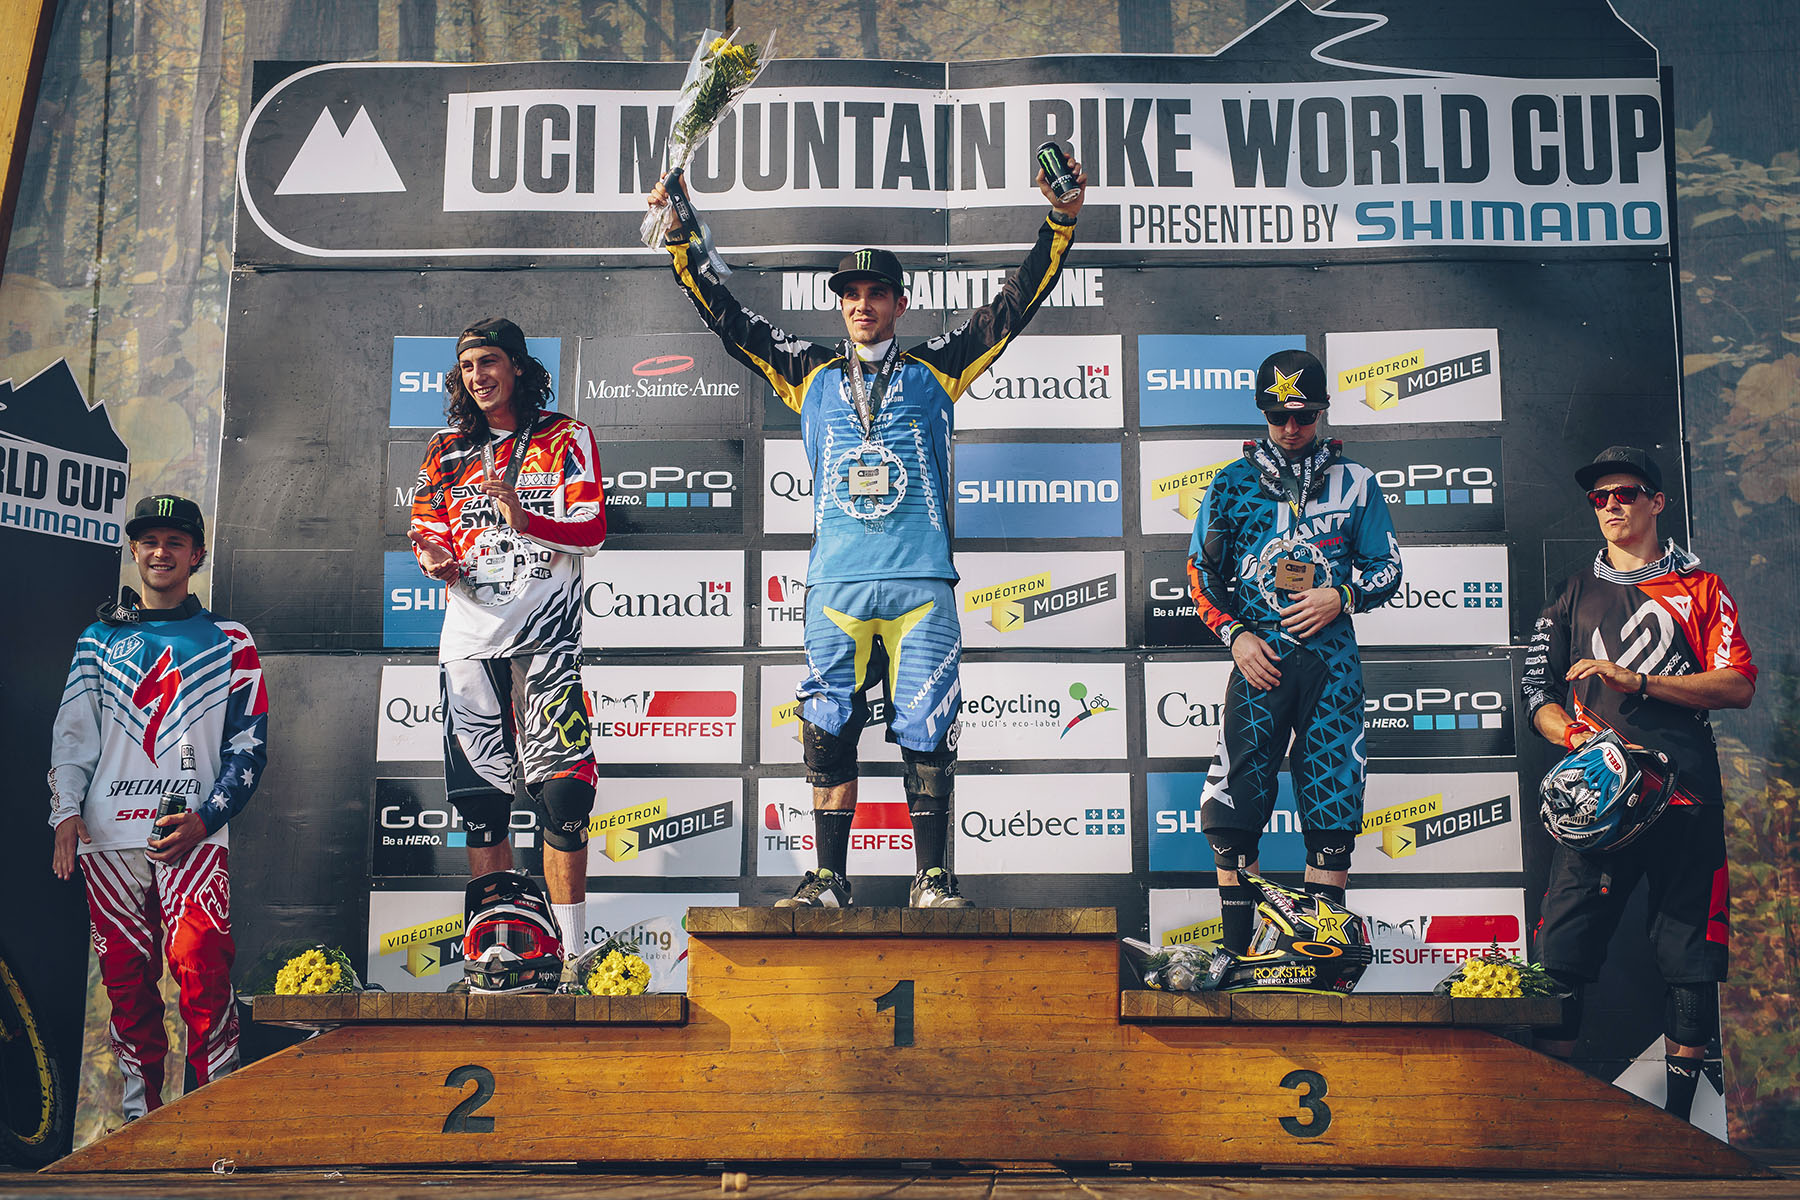 Another round of completely unpredictable results see's a new name on the top of the podium and turning this into one hell of a season. Pressure now rides of 5 riders coming into the penultimate round in Windham.